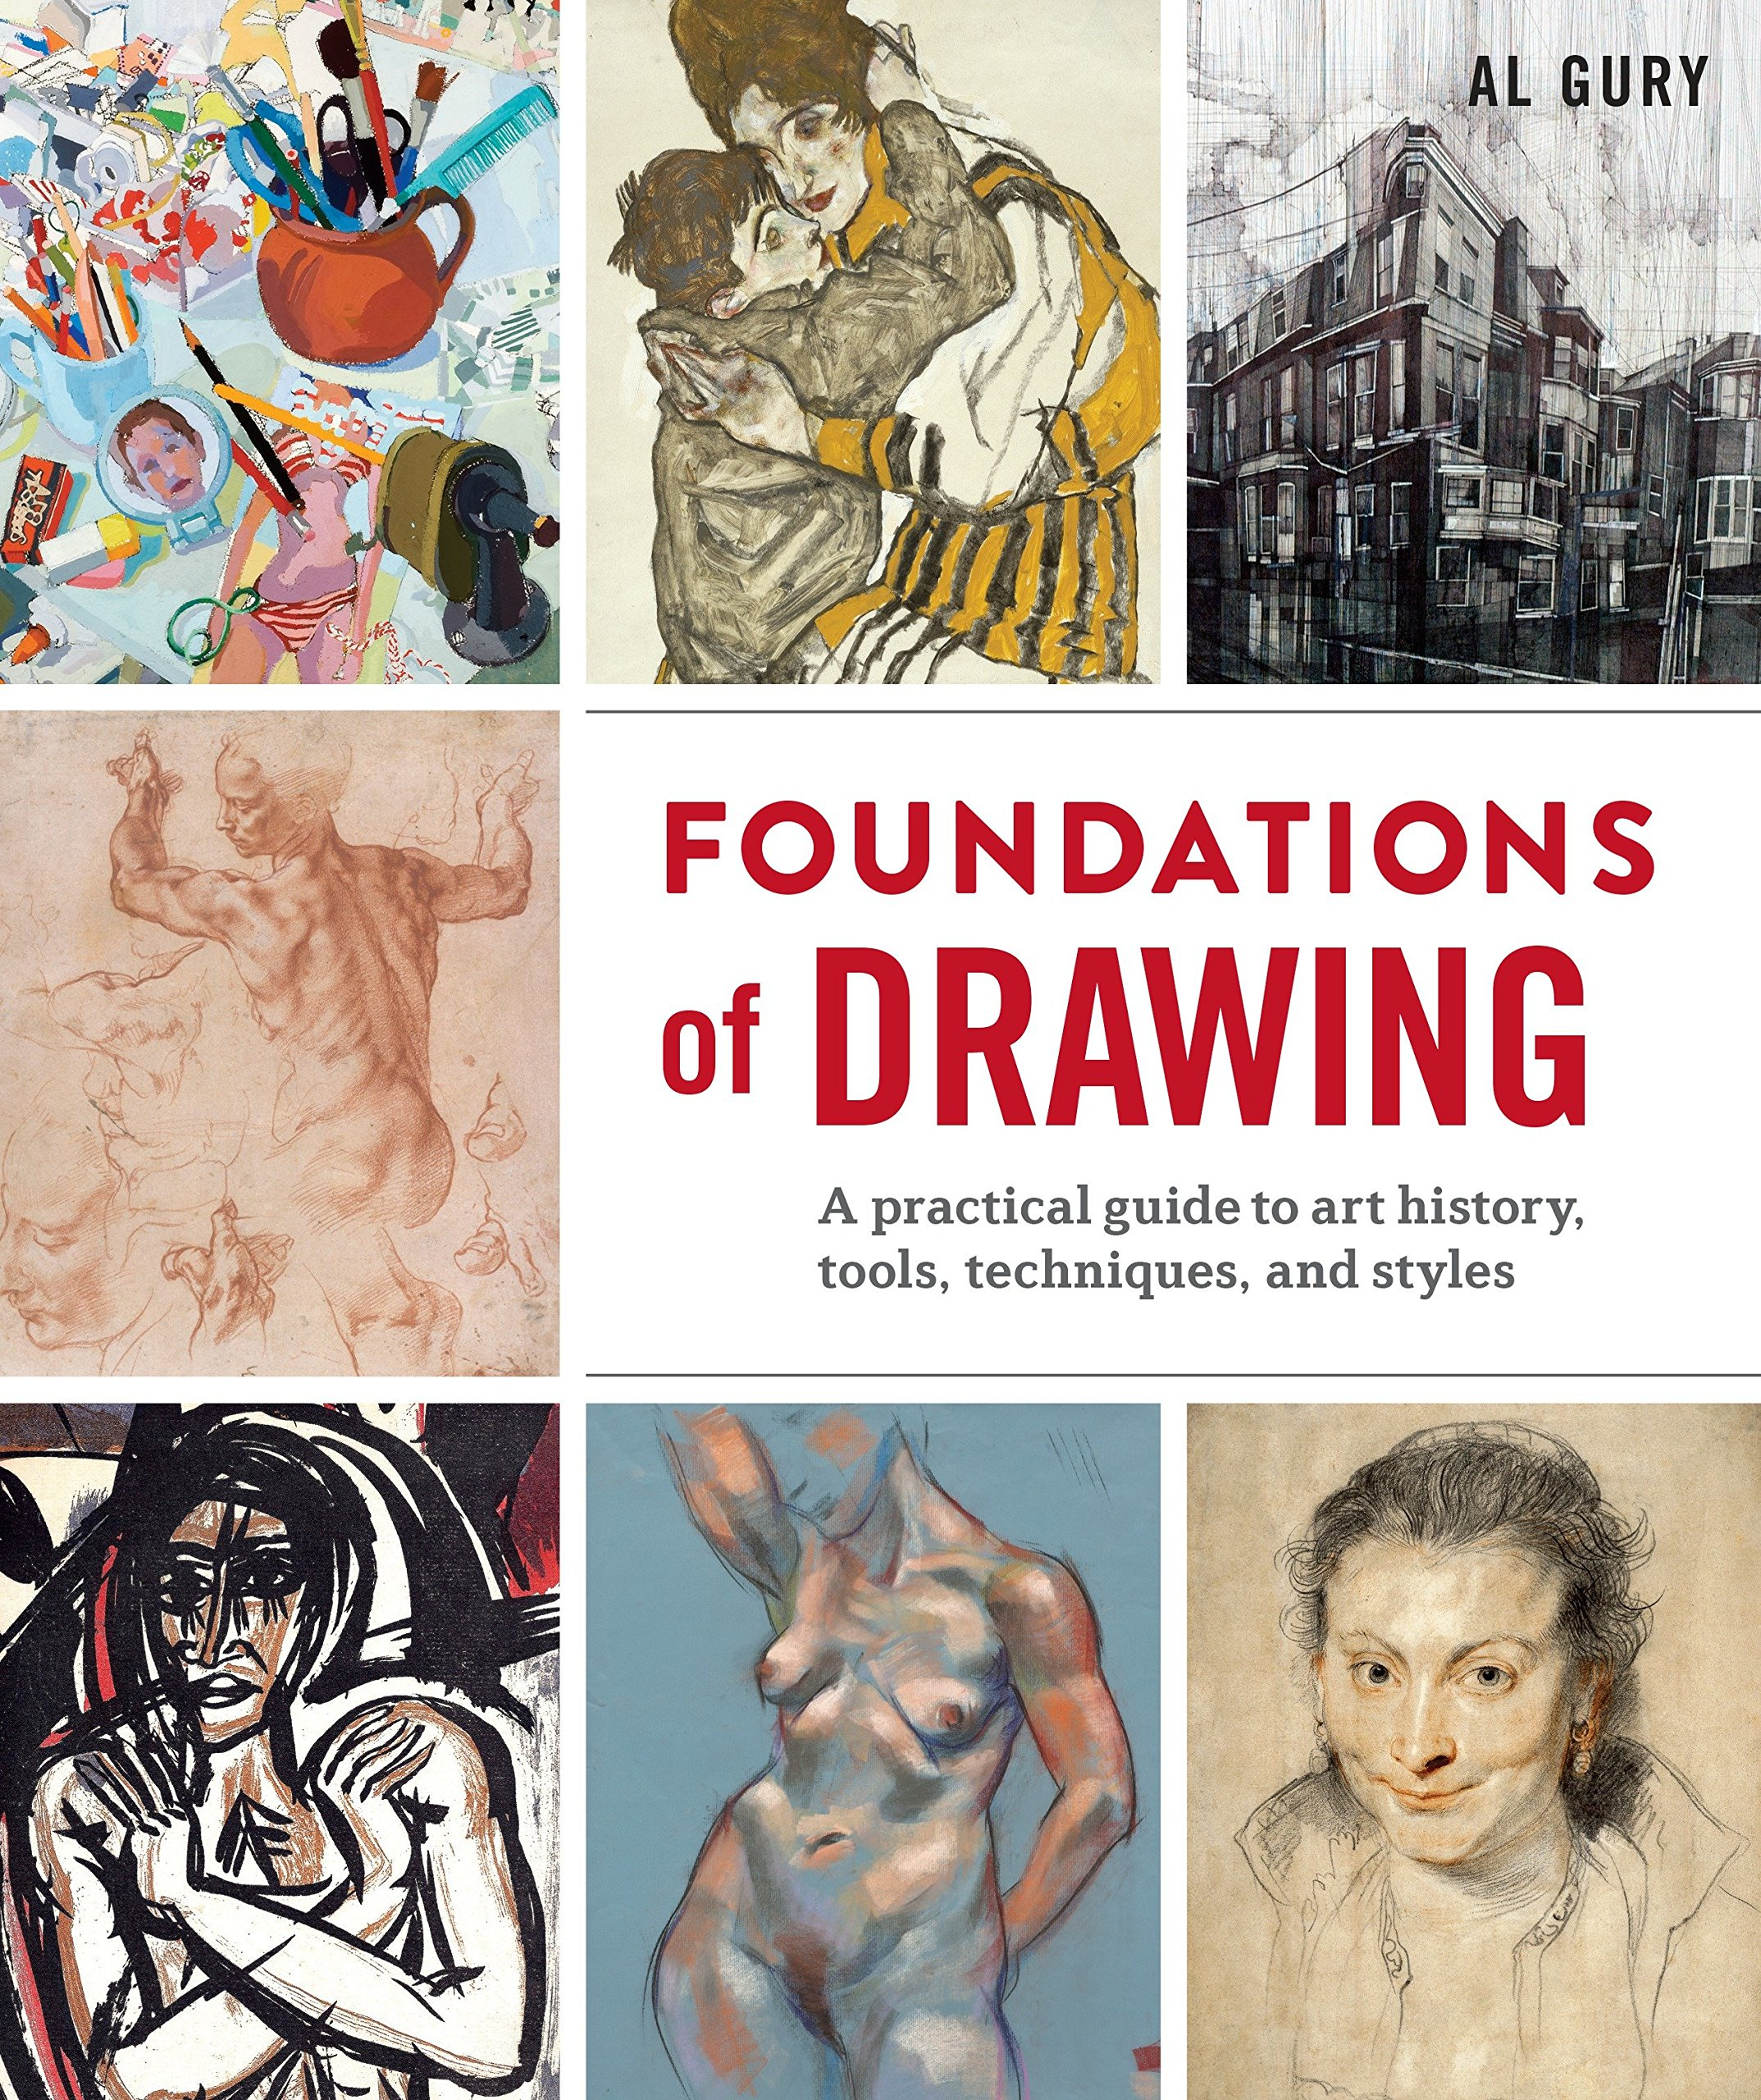 Foundations of Drawing: A Practical Guide to Art History Tools Techniques and Styles